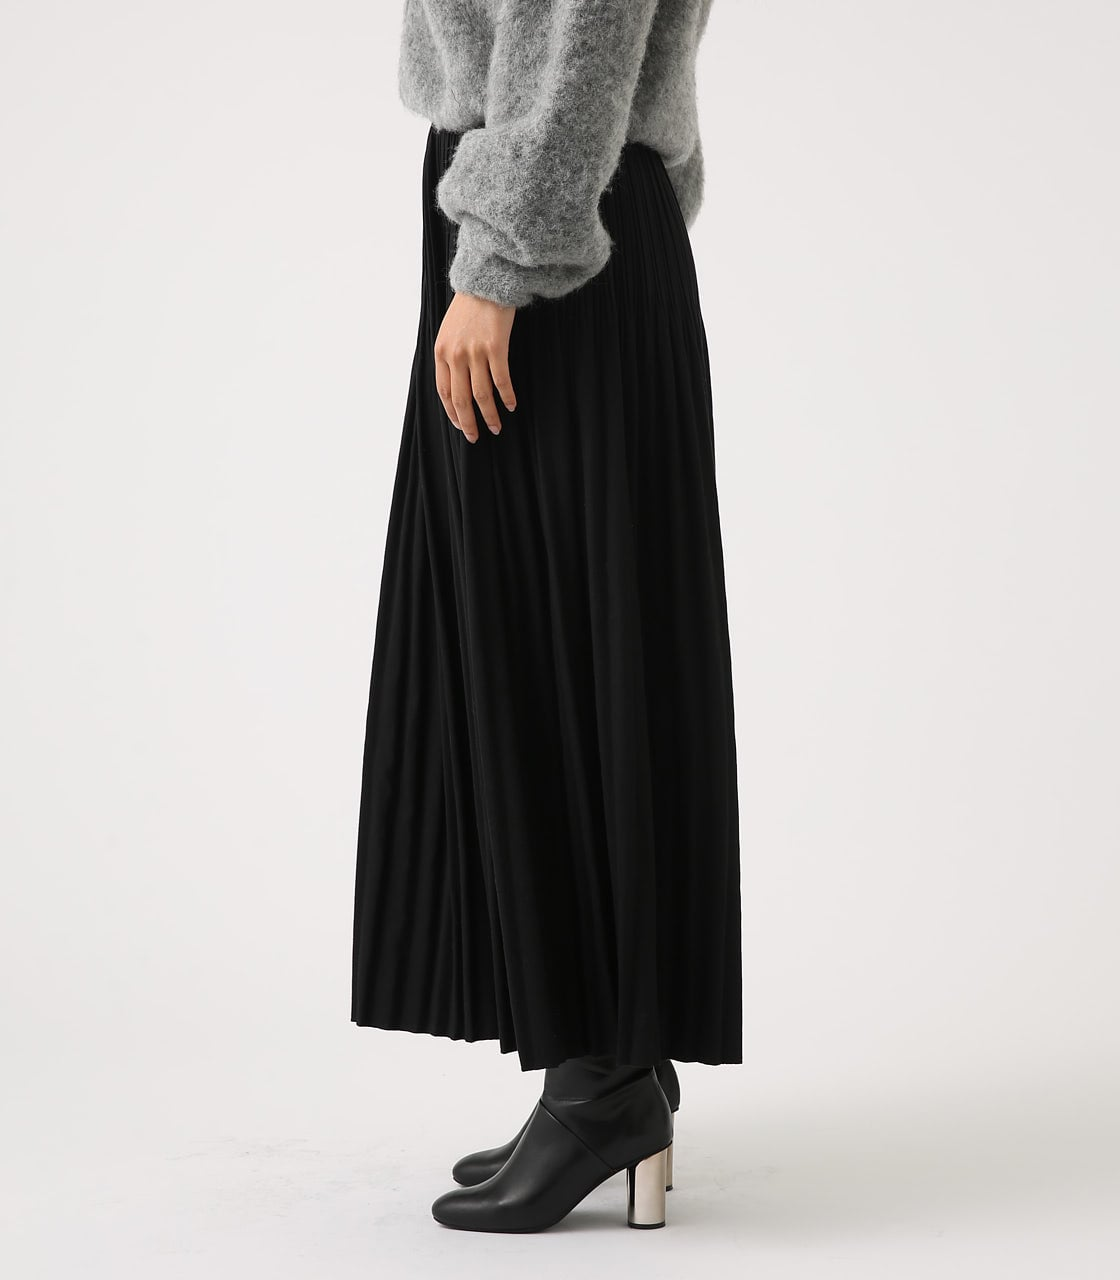 【AZUL BY MOUSSY】ベーシックプリーツスカート 詳細画像 BLK 6